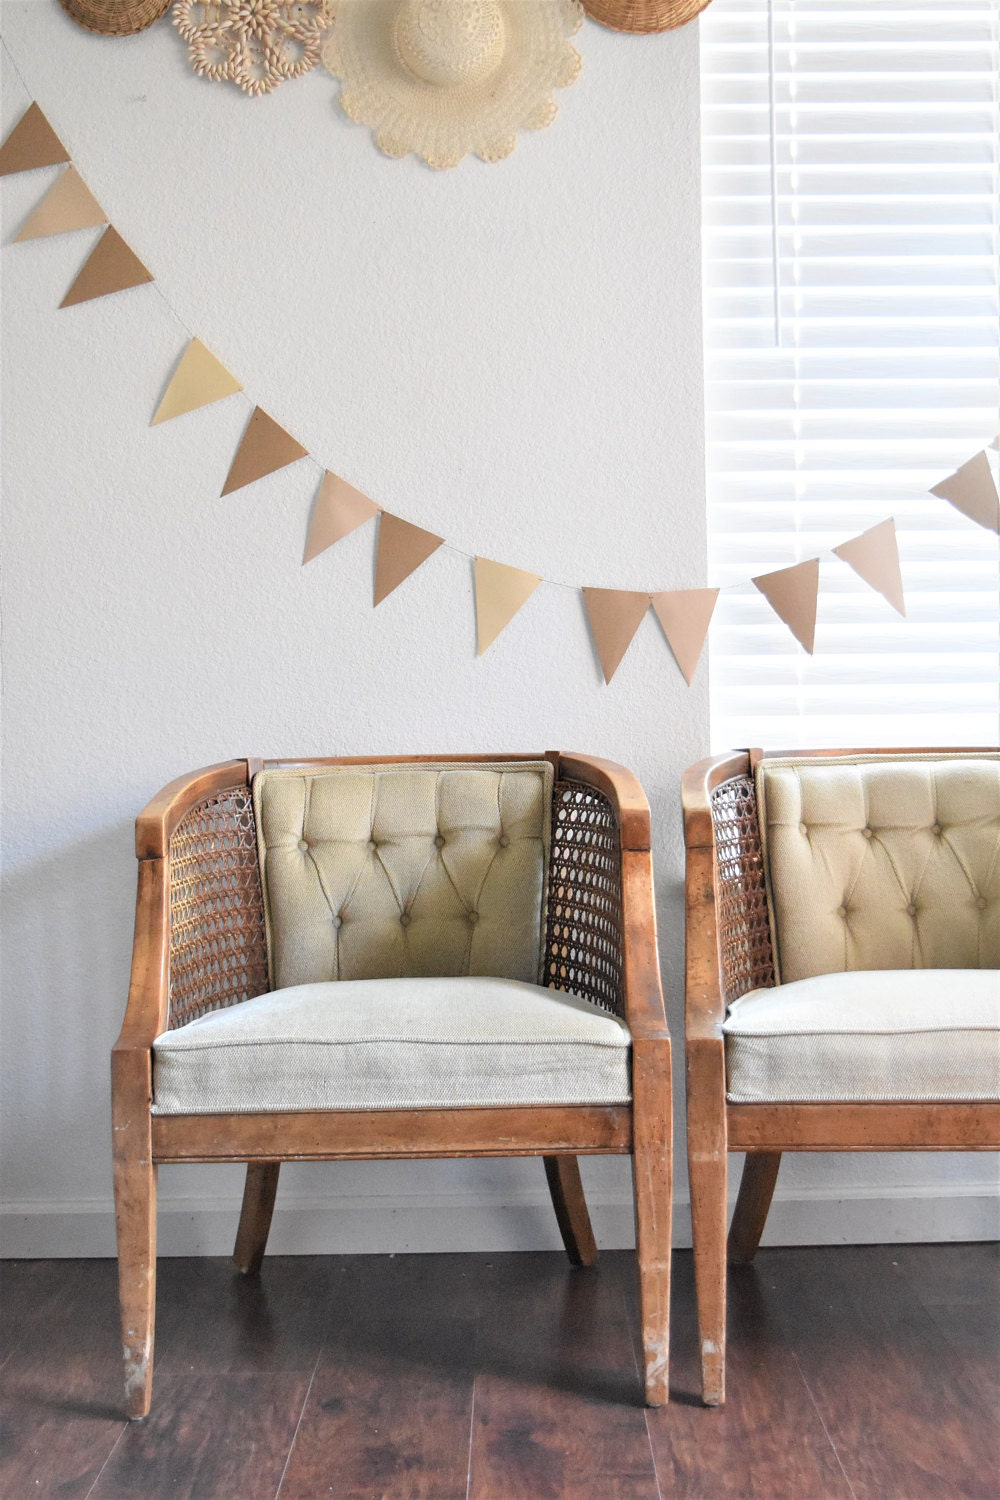 Pair of tufted, mid century wood chairs perfect for that romantic, rustic wedding decor. Just add a his & her sign, and these would make the most beautiful photo props!